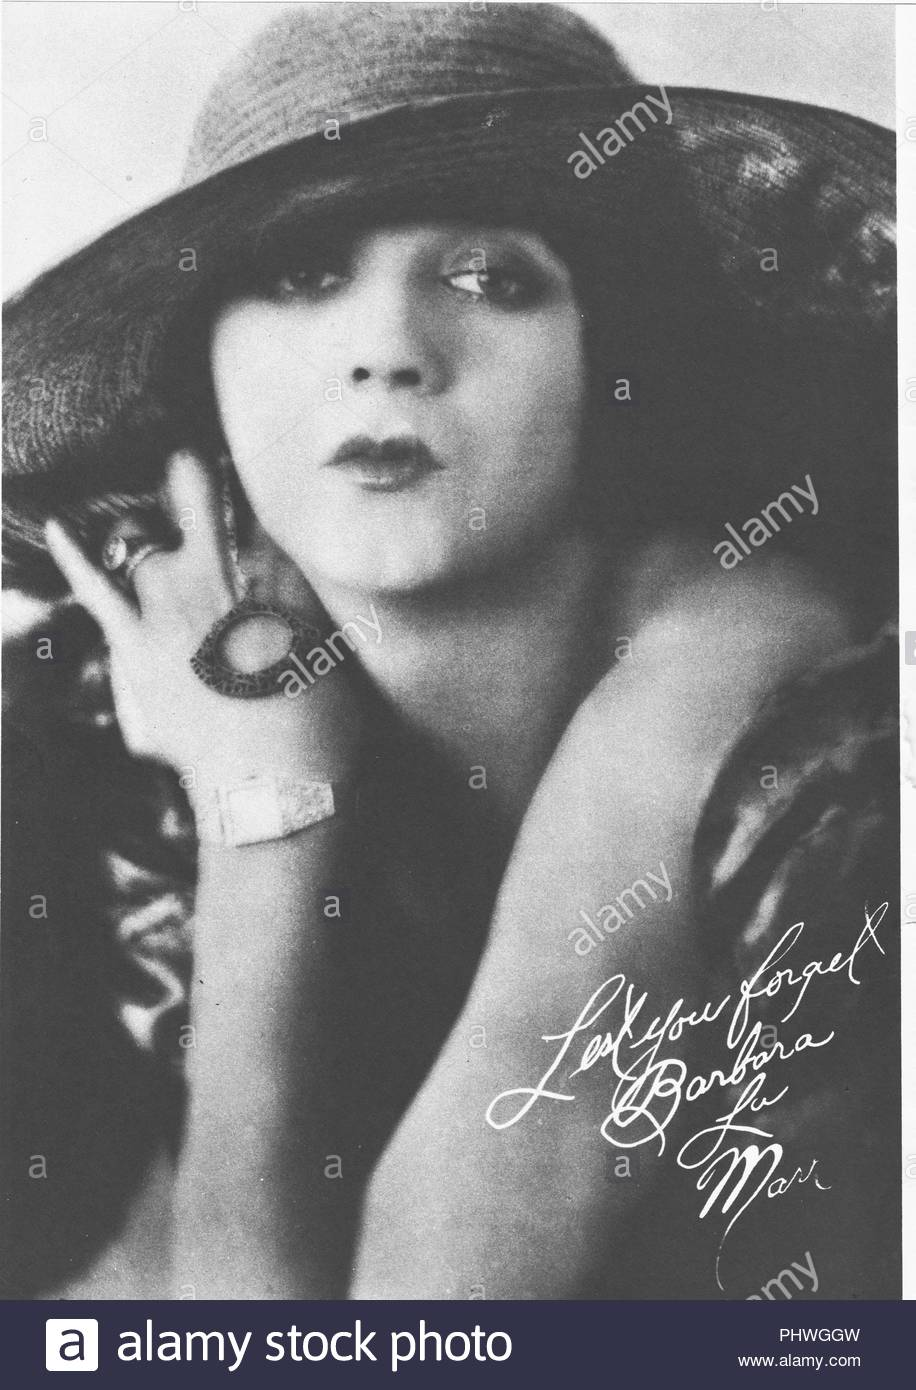 Barbara La Marr (1896-1926) American silent film actress and screenwriter. Her films include The Three Musketeers, Flame of Youth, Souls for Sale. She died young, at age 29, of tuberculosis. A great beauty, MGM chief Louis B. Mayer named Hedy Lamarr after her. - Stock Image